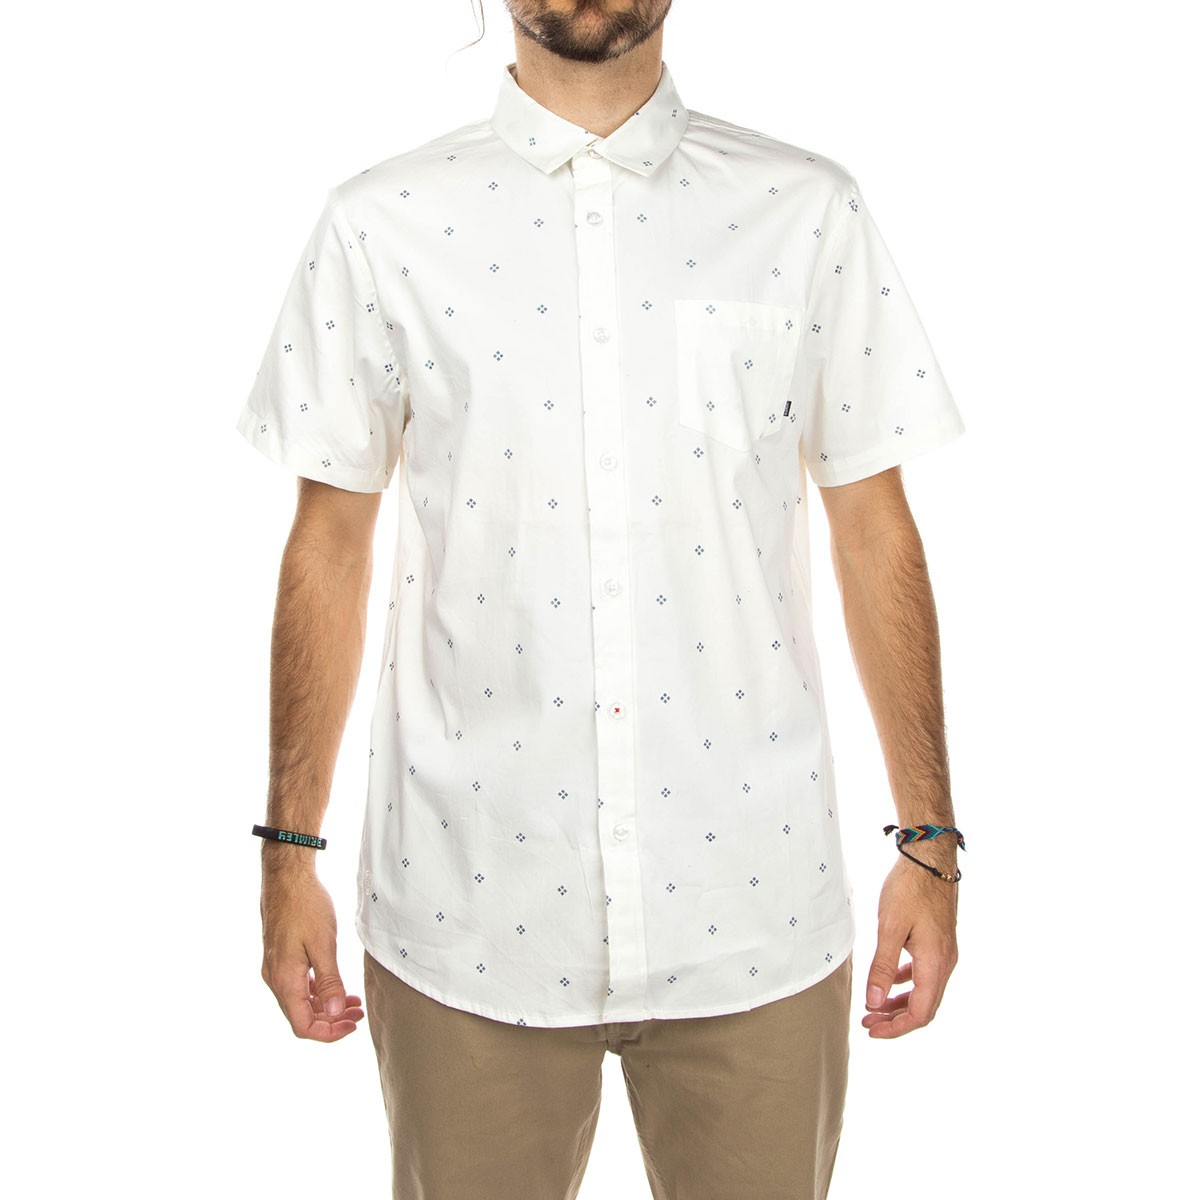 Element Adventurer Shirt - Ivory